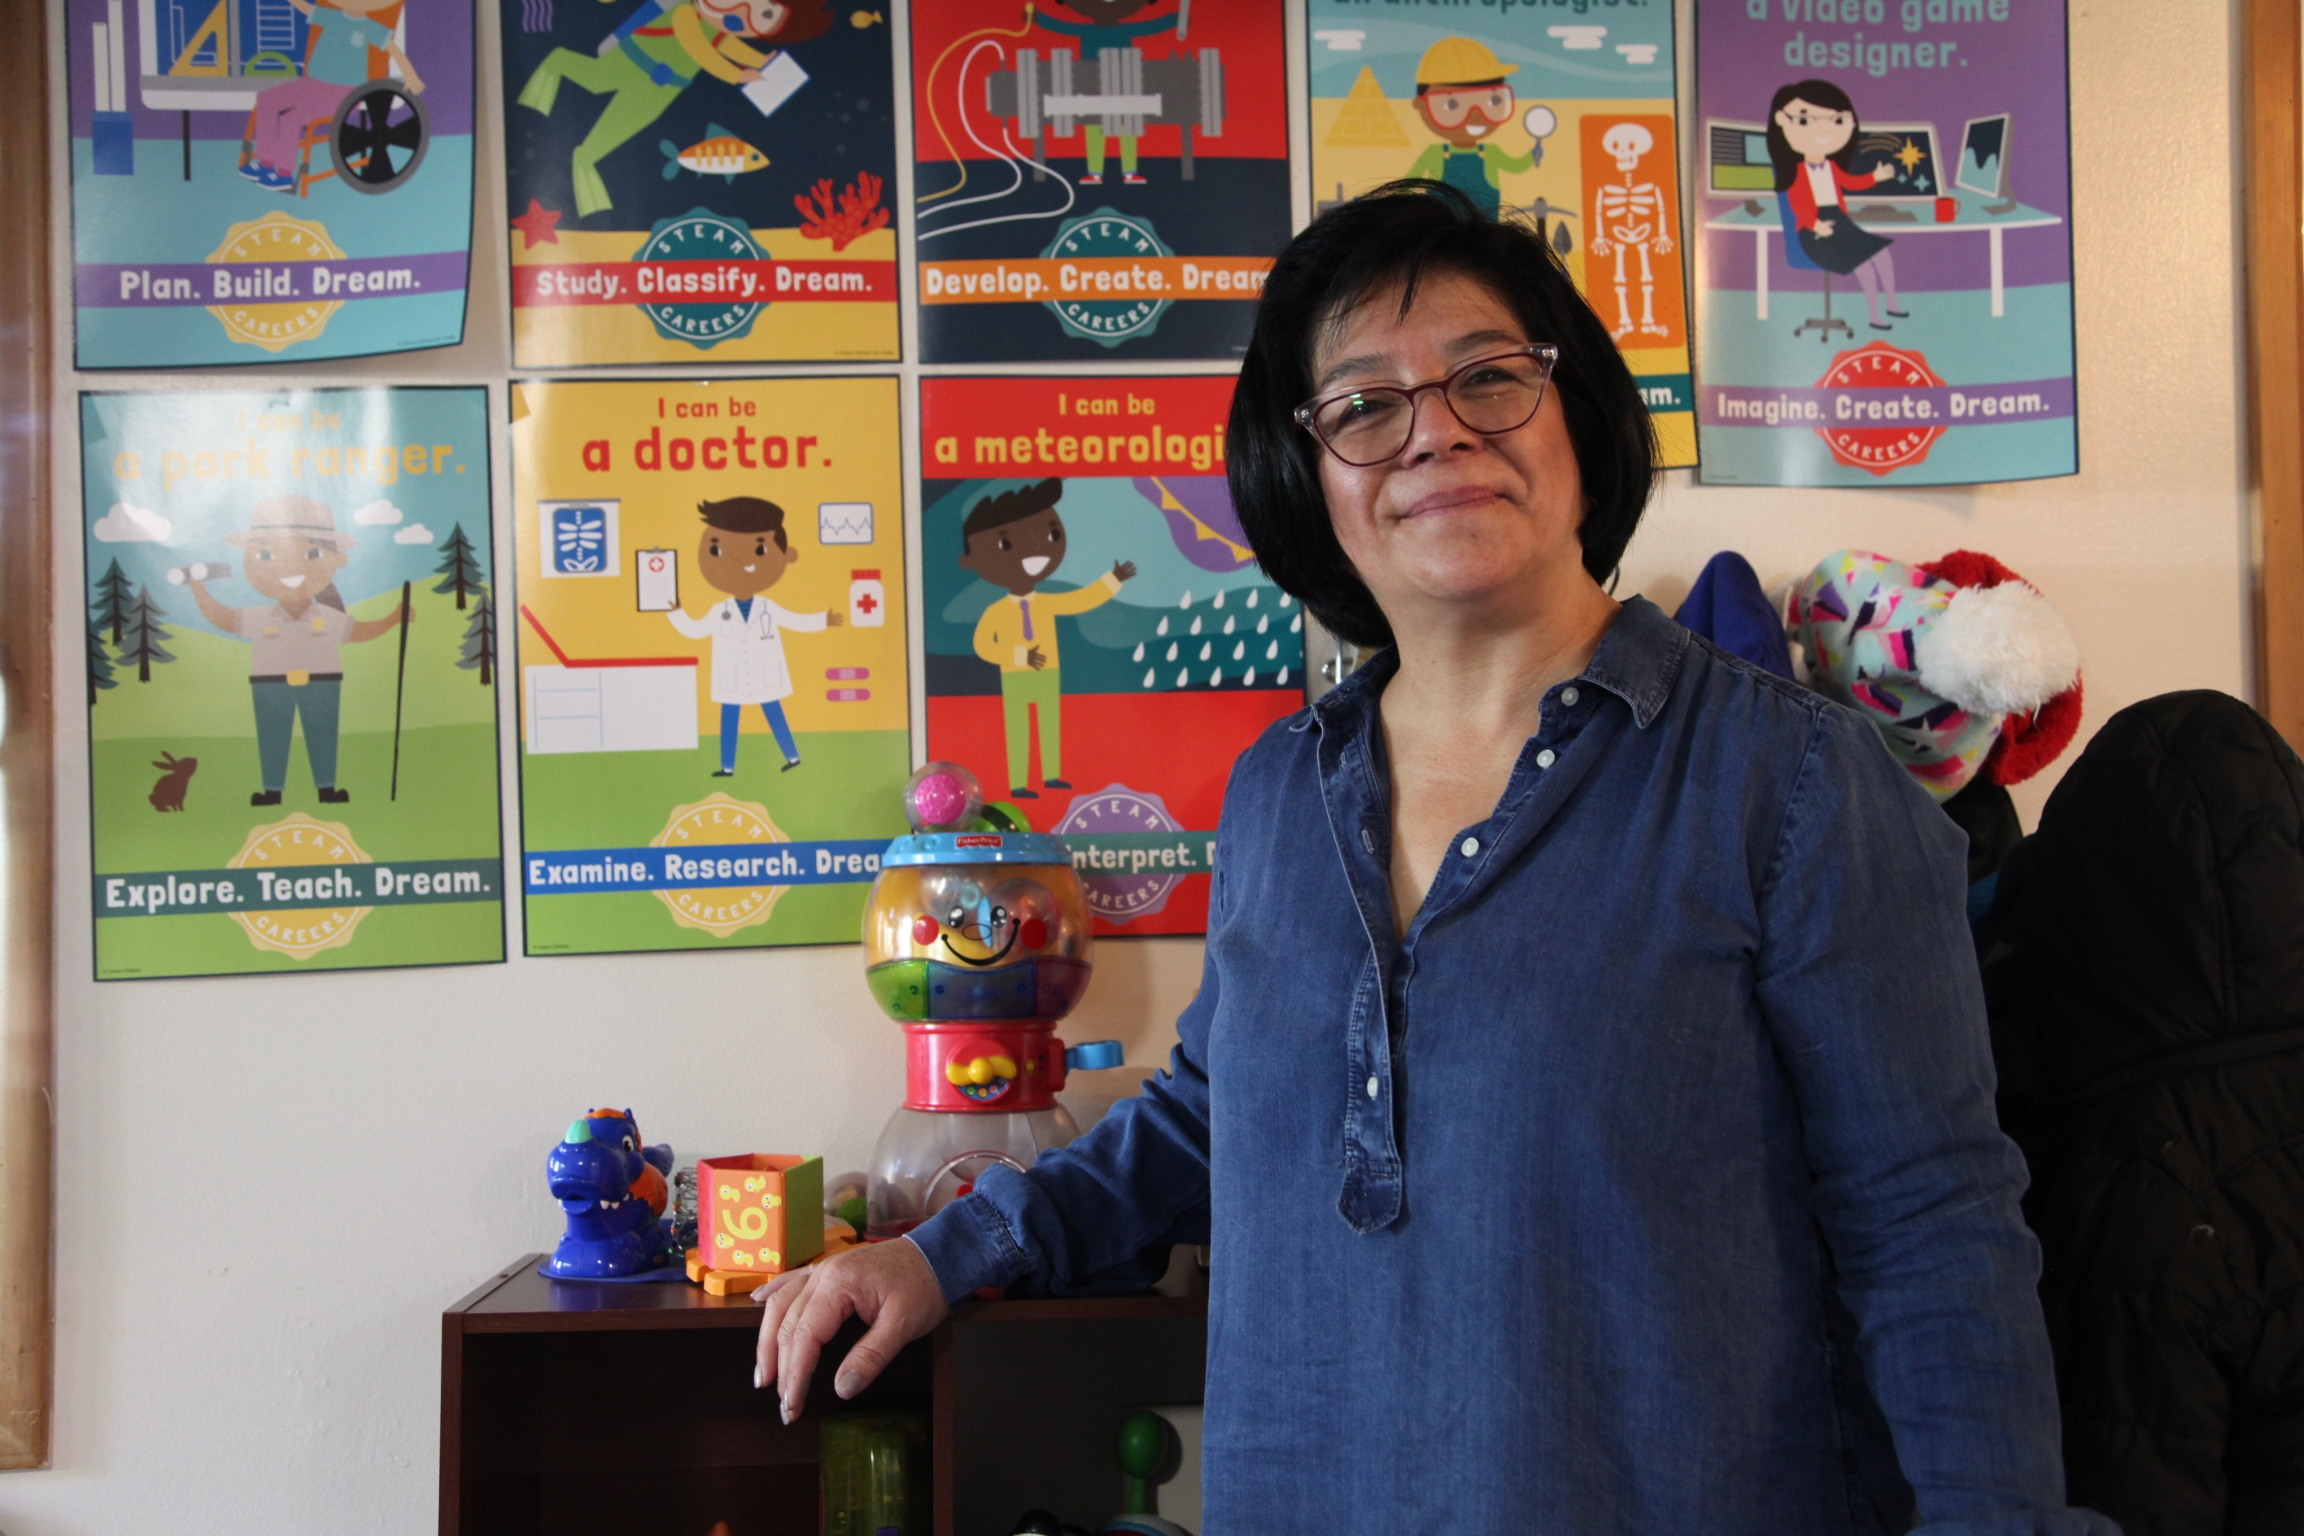 A woman stands in front of children's posters